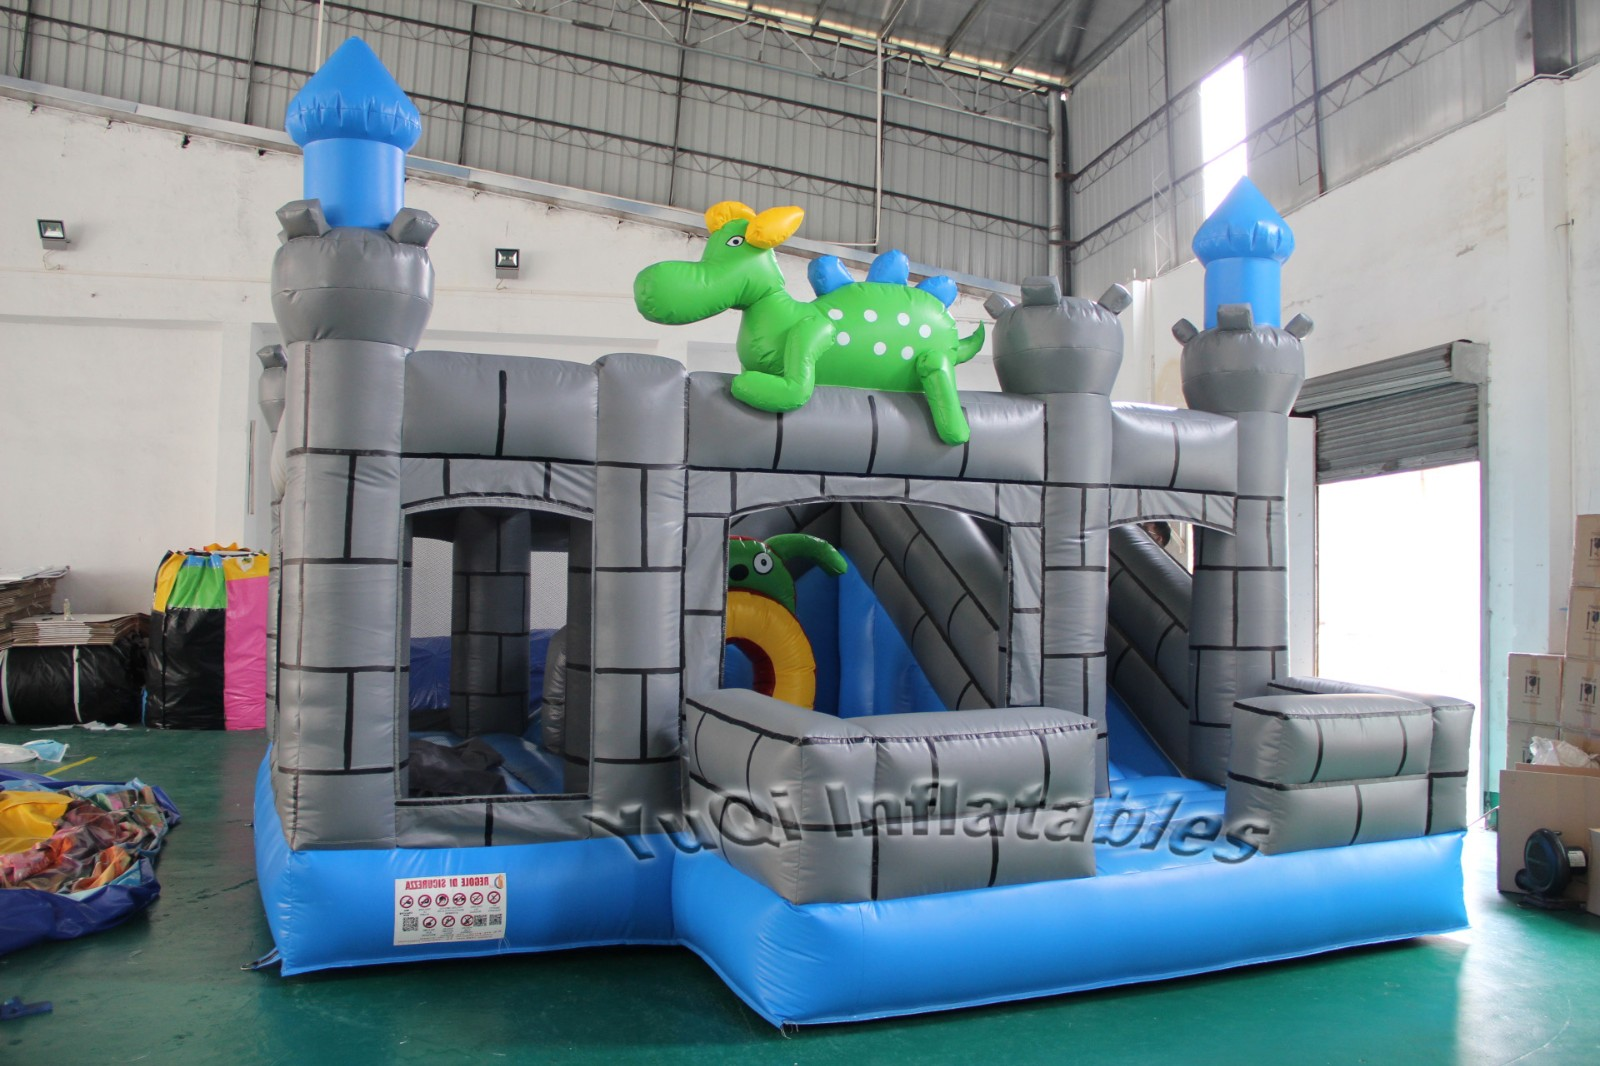 YUQI-Find Bounce House Combo For Sale Cheap Inflatable | China